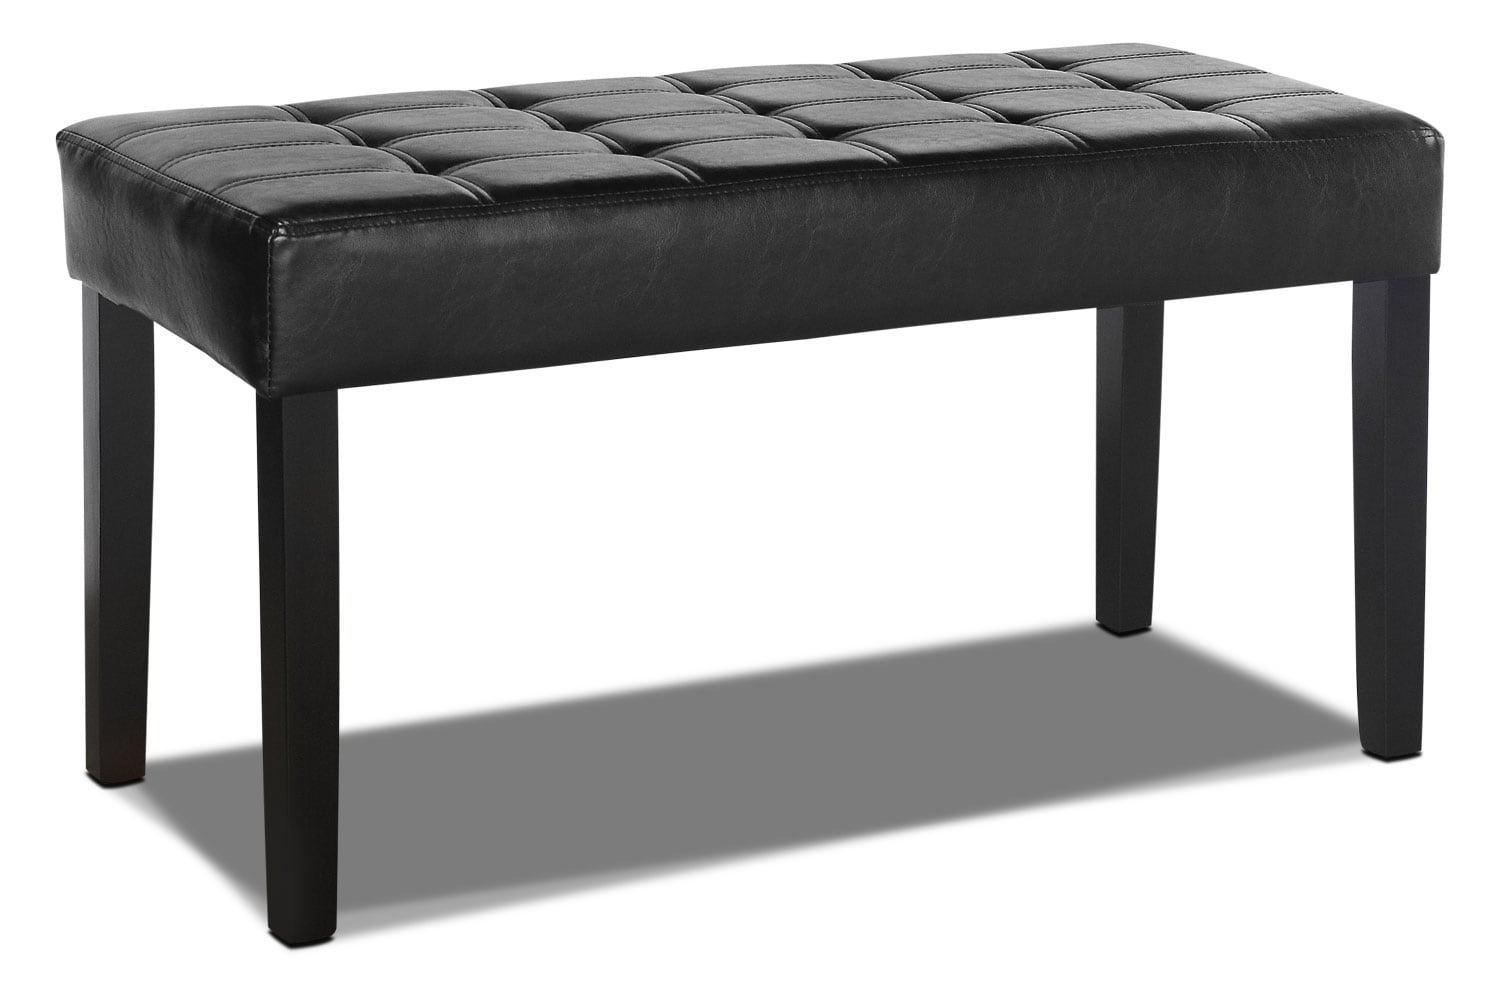 Accent and Occasional Furniture - Cali Tufted Bench – Black